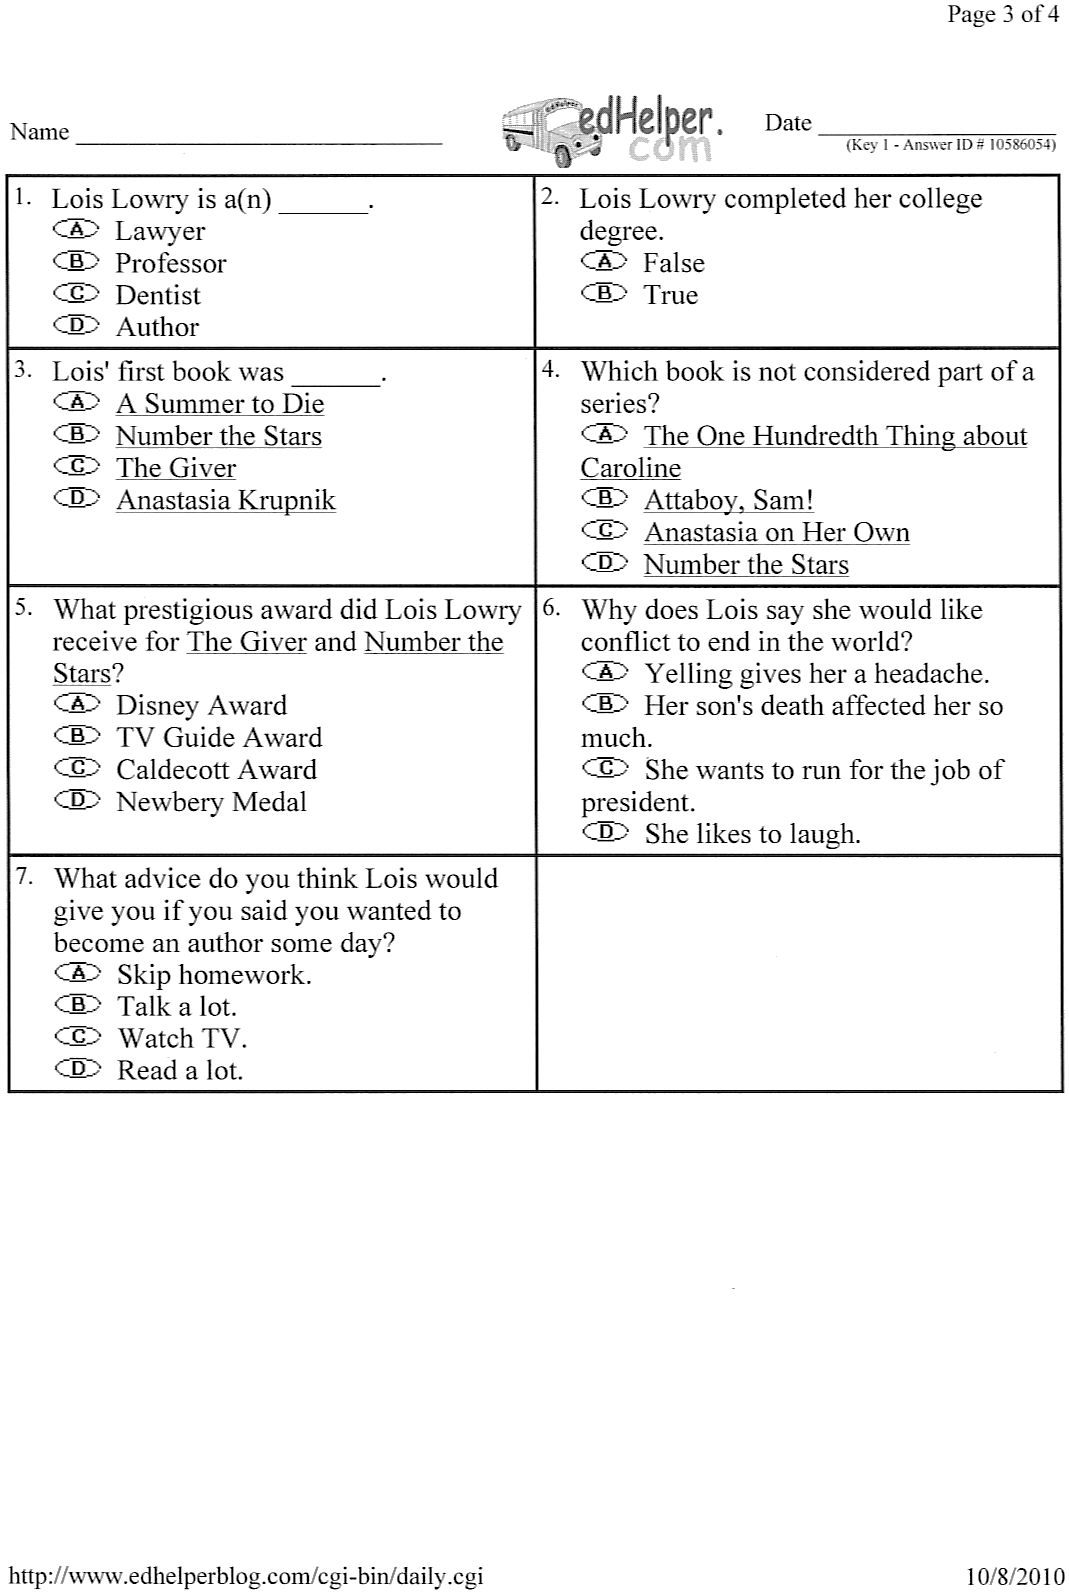 Mrs Hammerberg S Reading Class 4th Grade Homework Due 10 15